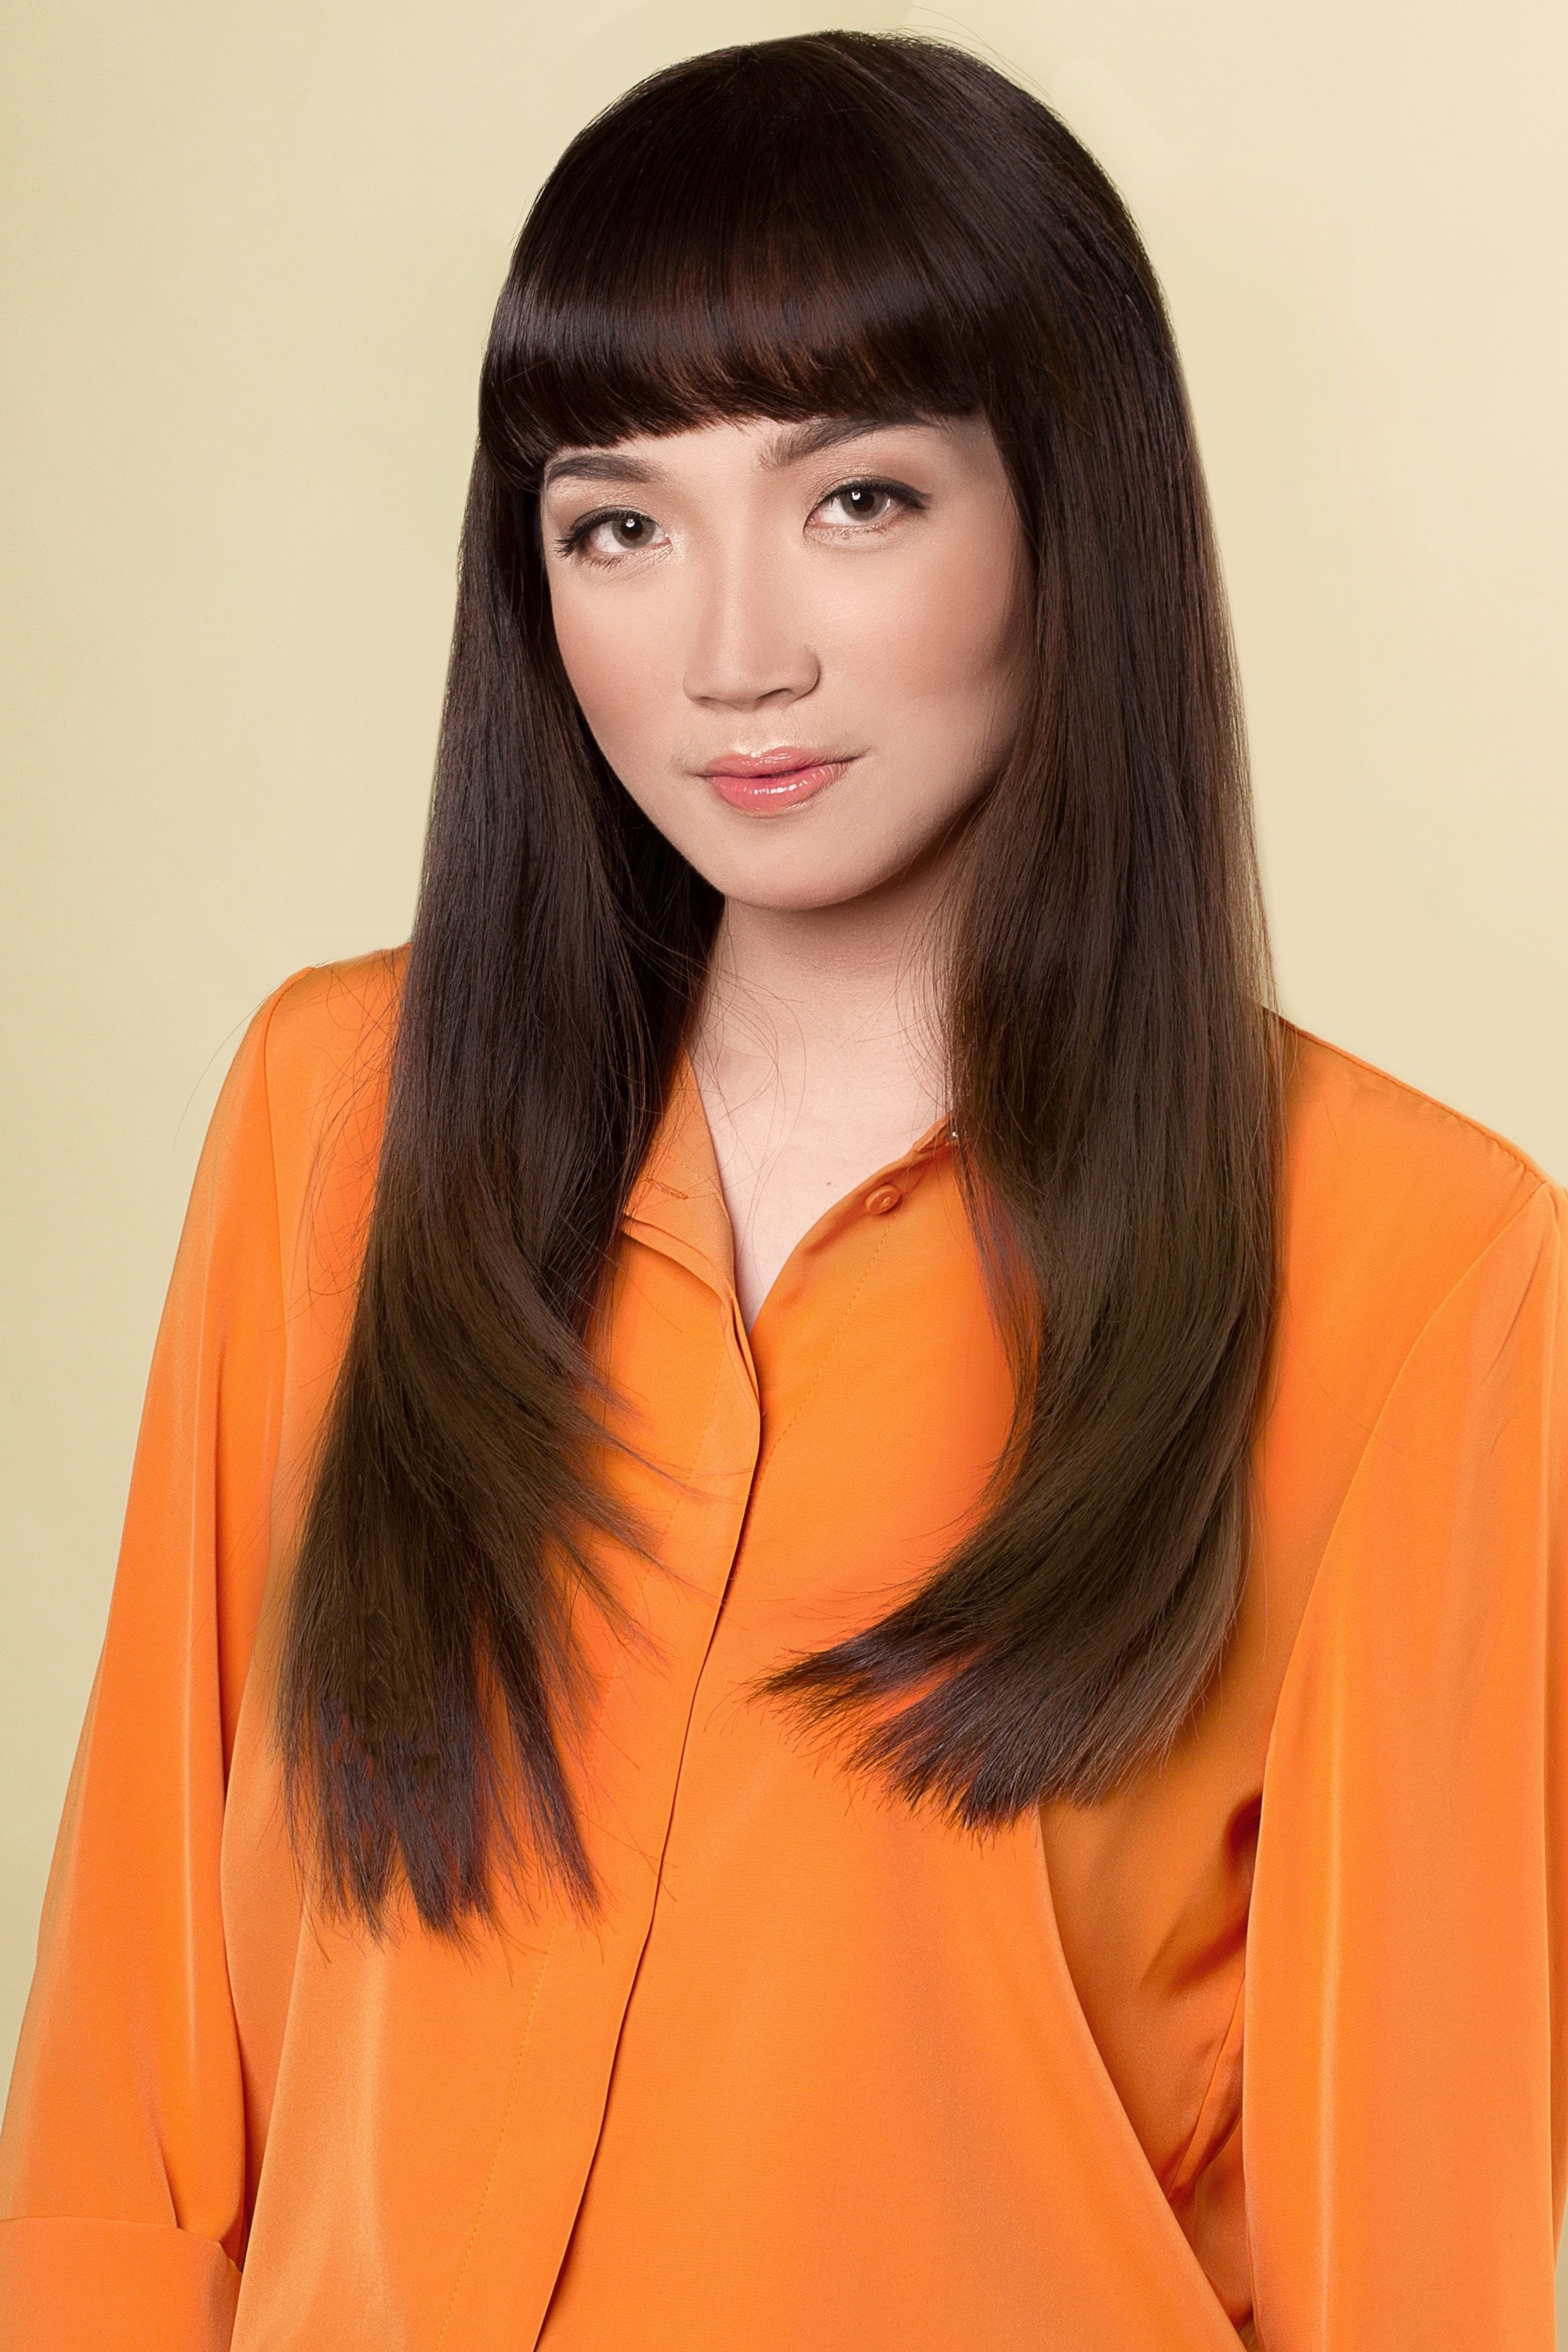 Straight hair ideas: Asian woman with long hair with bangs